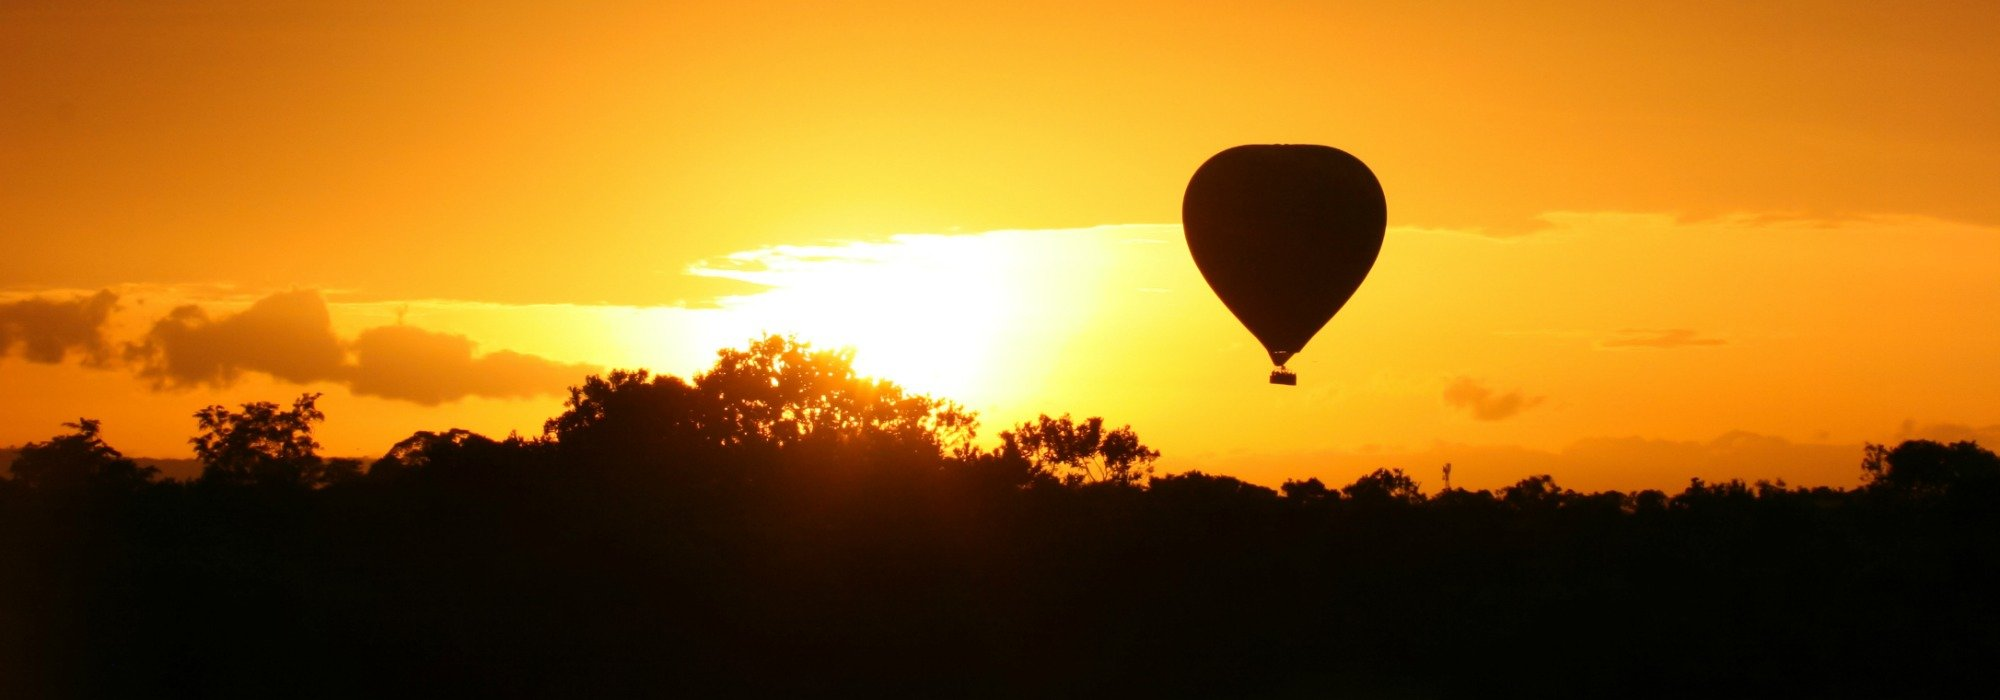 Maasai Mara Hot Air Balloon